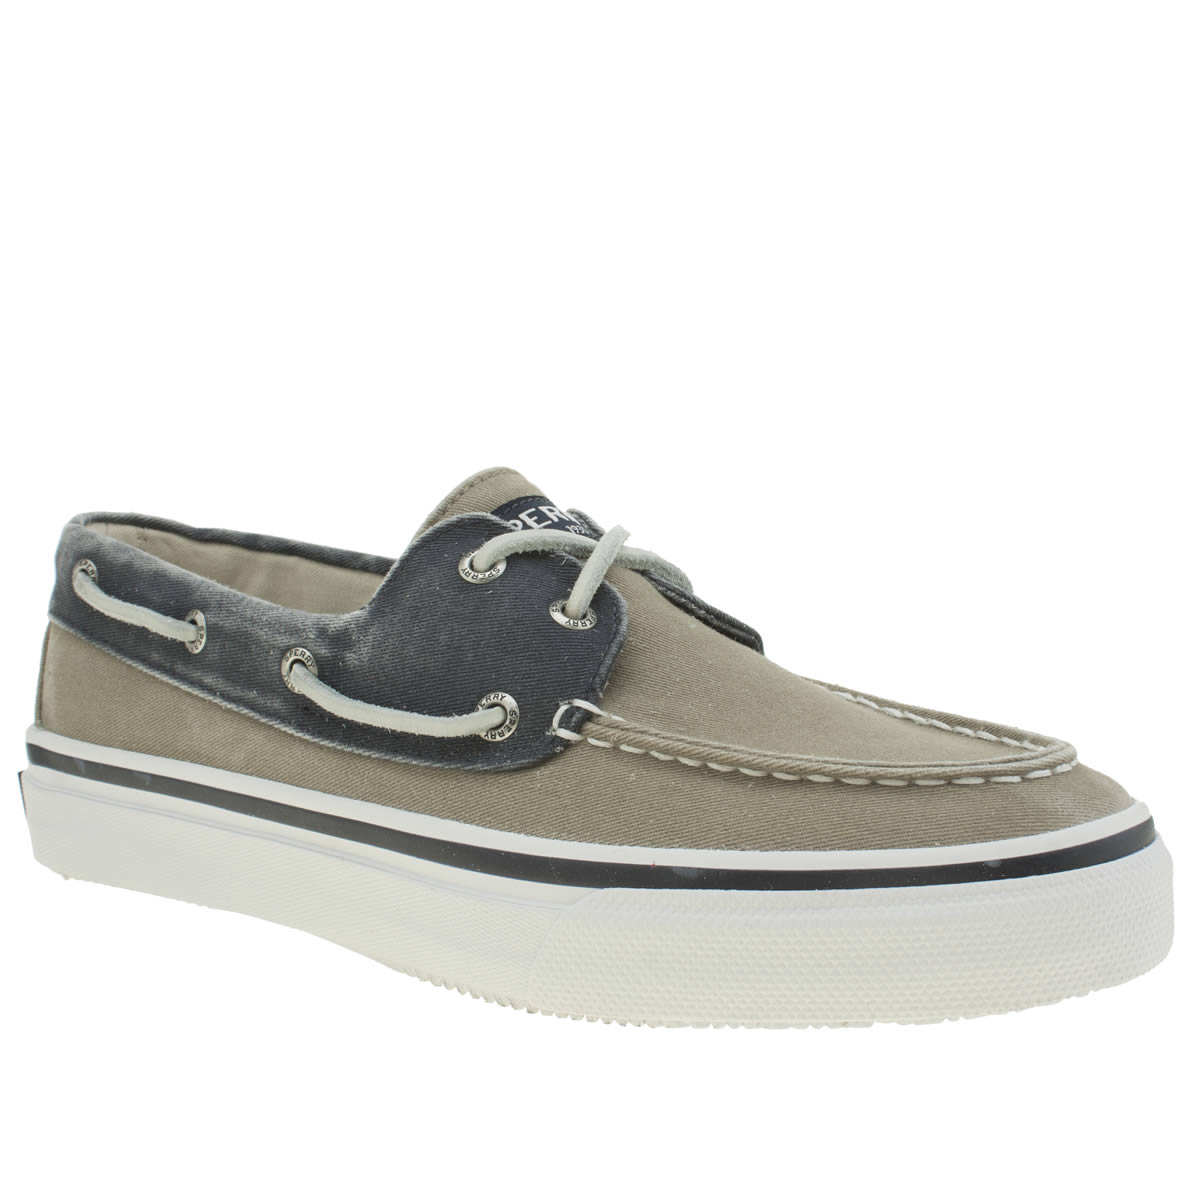 Sperry Sperry Natural Bahama 2 Eye Mens Shoes